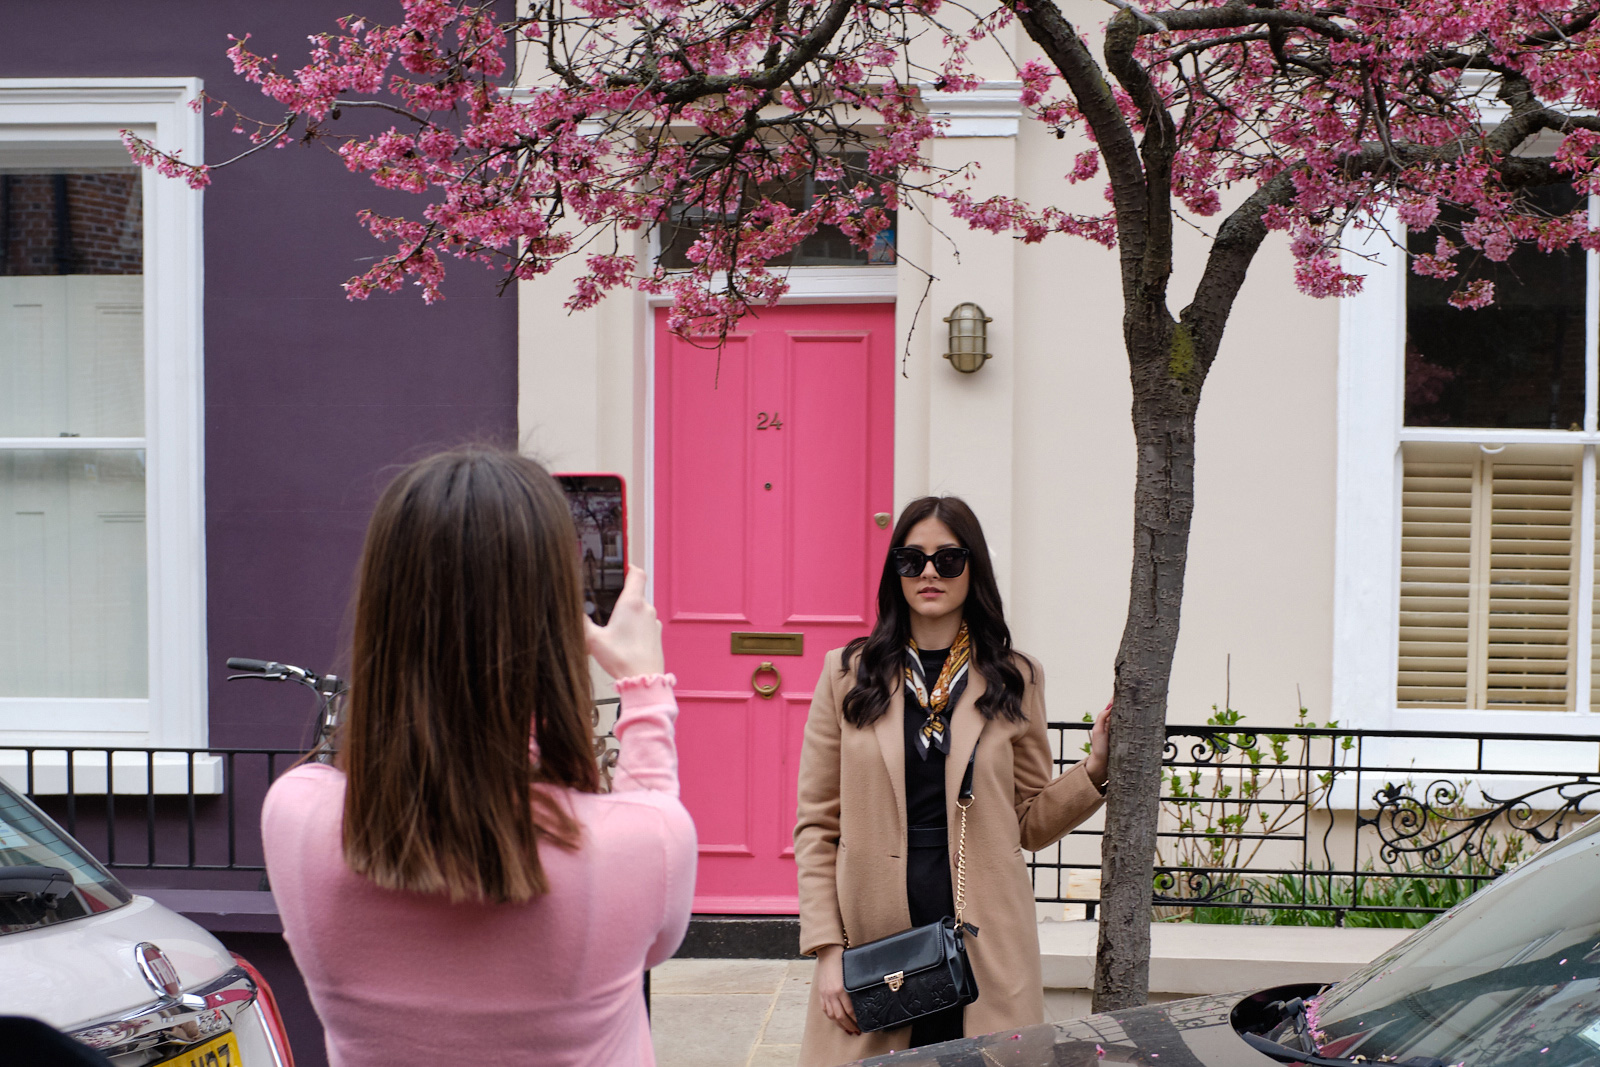 Probably Influencing   The story is that the residents of Notting Hill have a problem with influencers continually harassing them by taking photographs outside of their homes. I'd encourage shark infested moats.